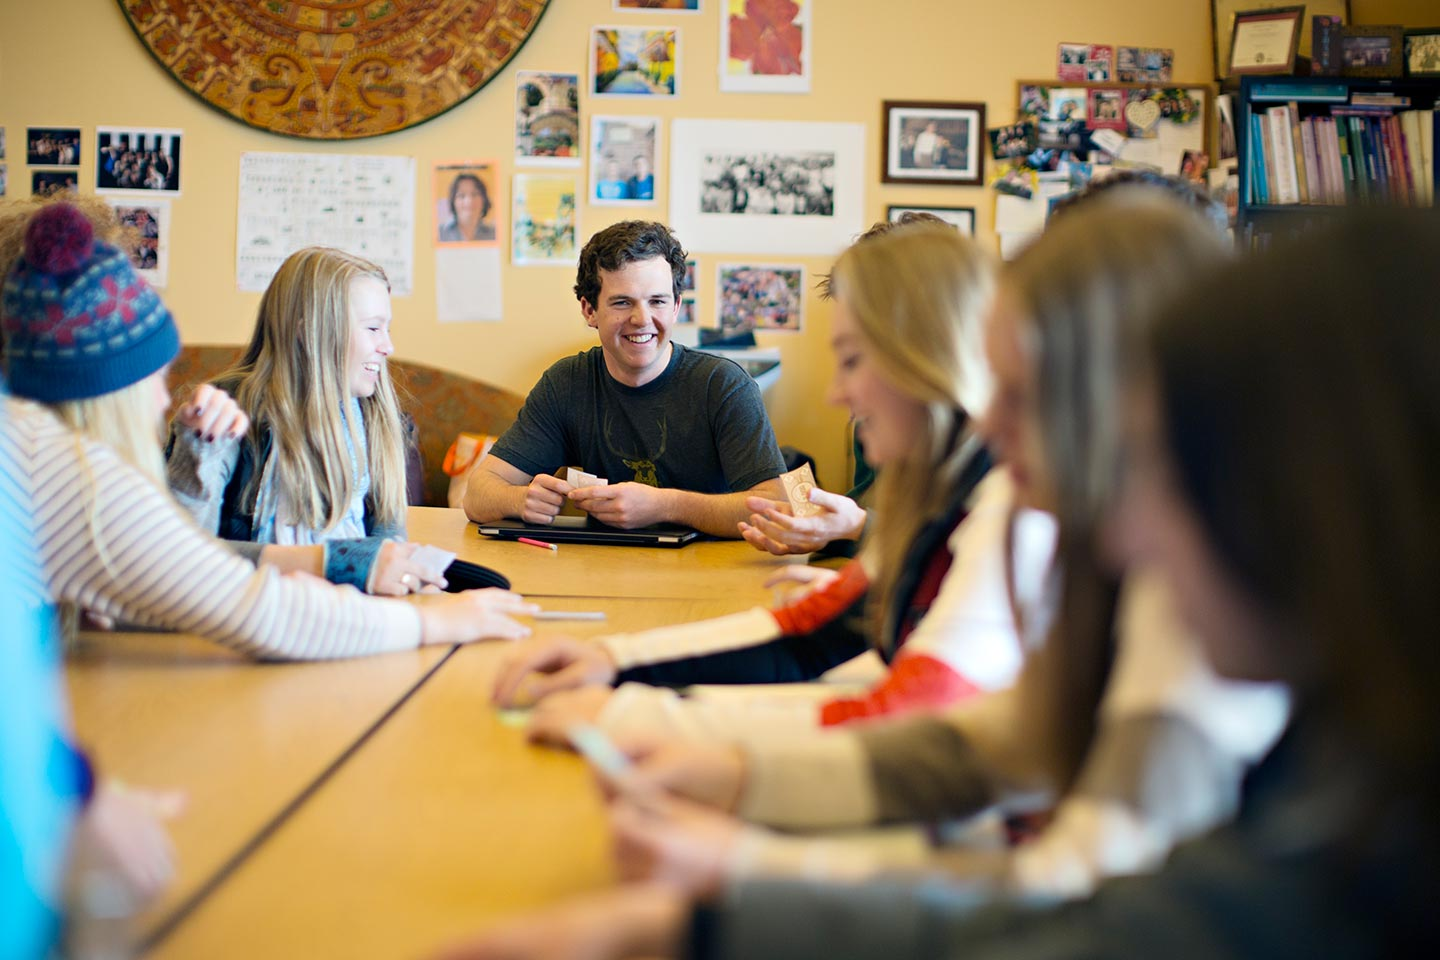 Students talking around a table in class